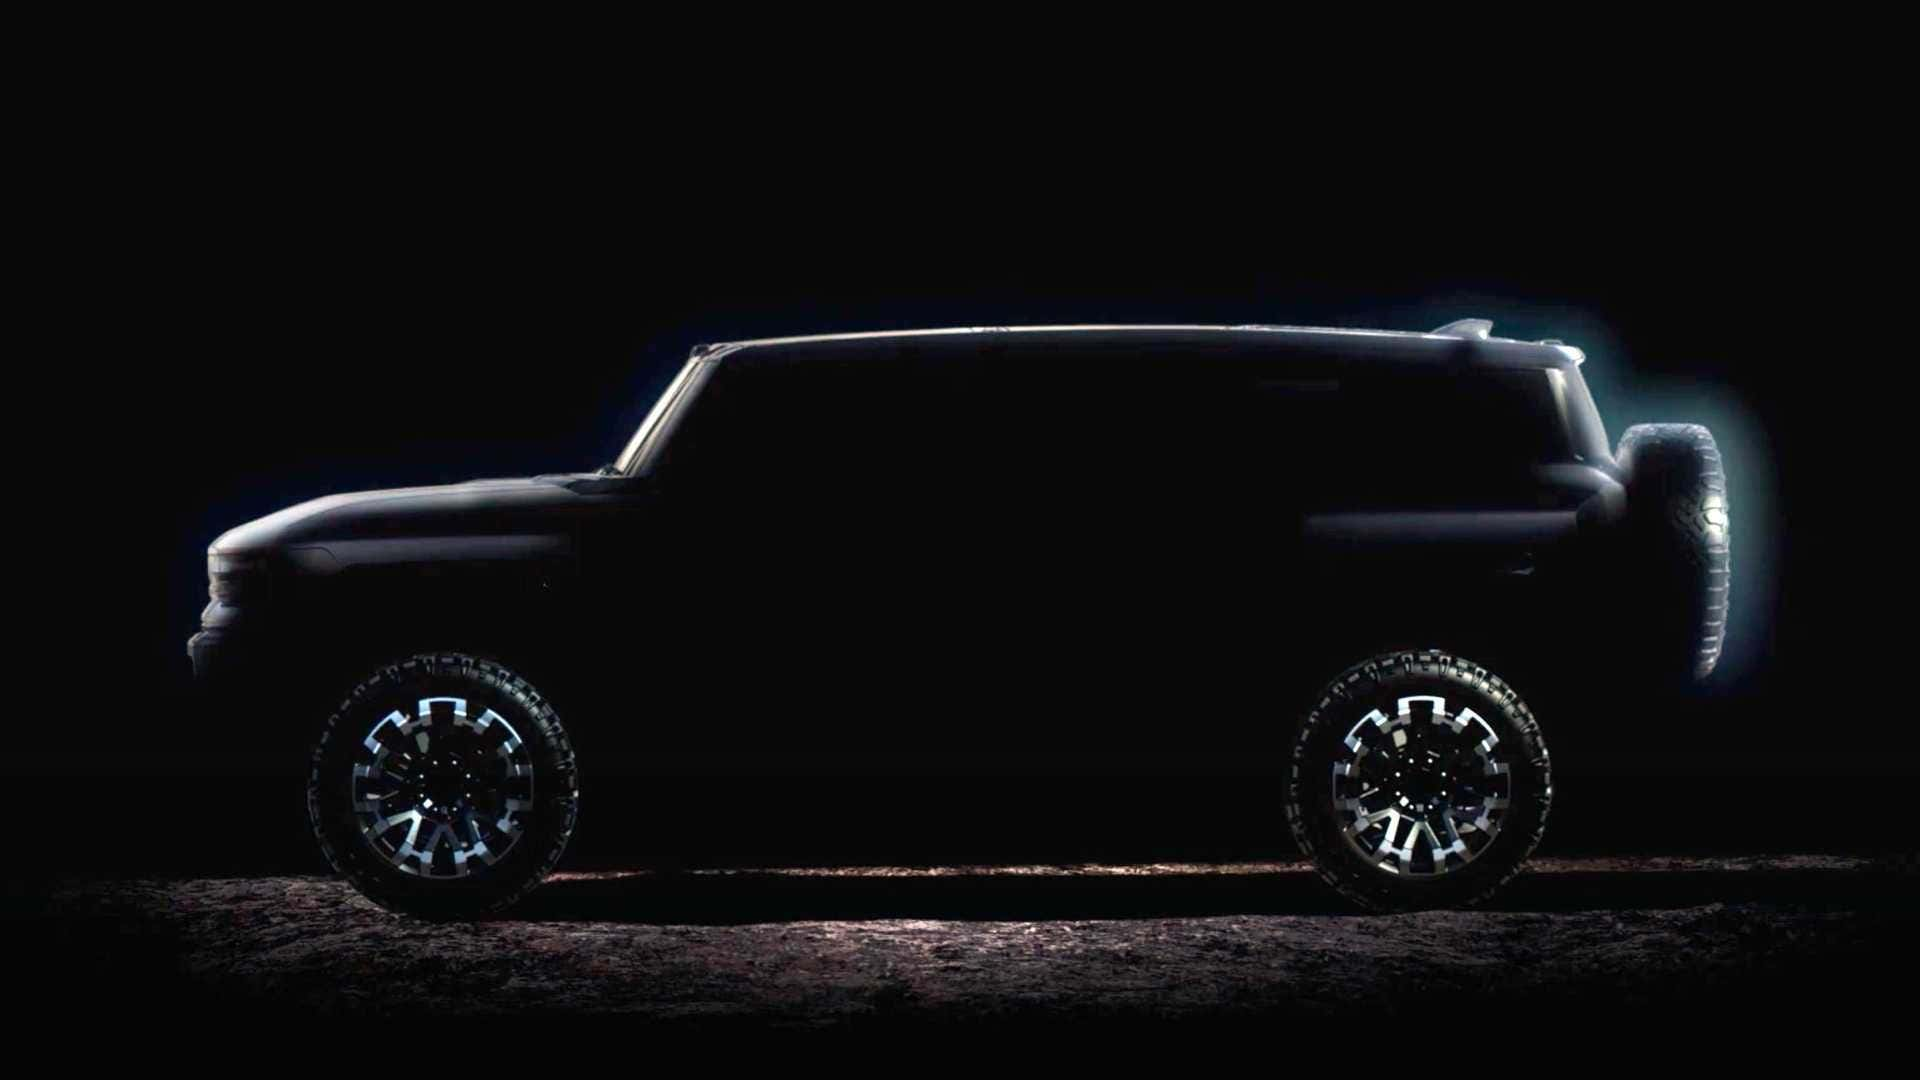 Another teaser for the GMC Hummer EV.